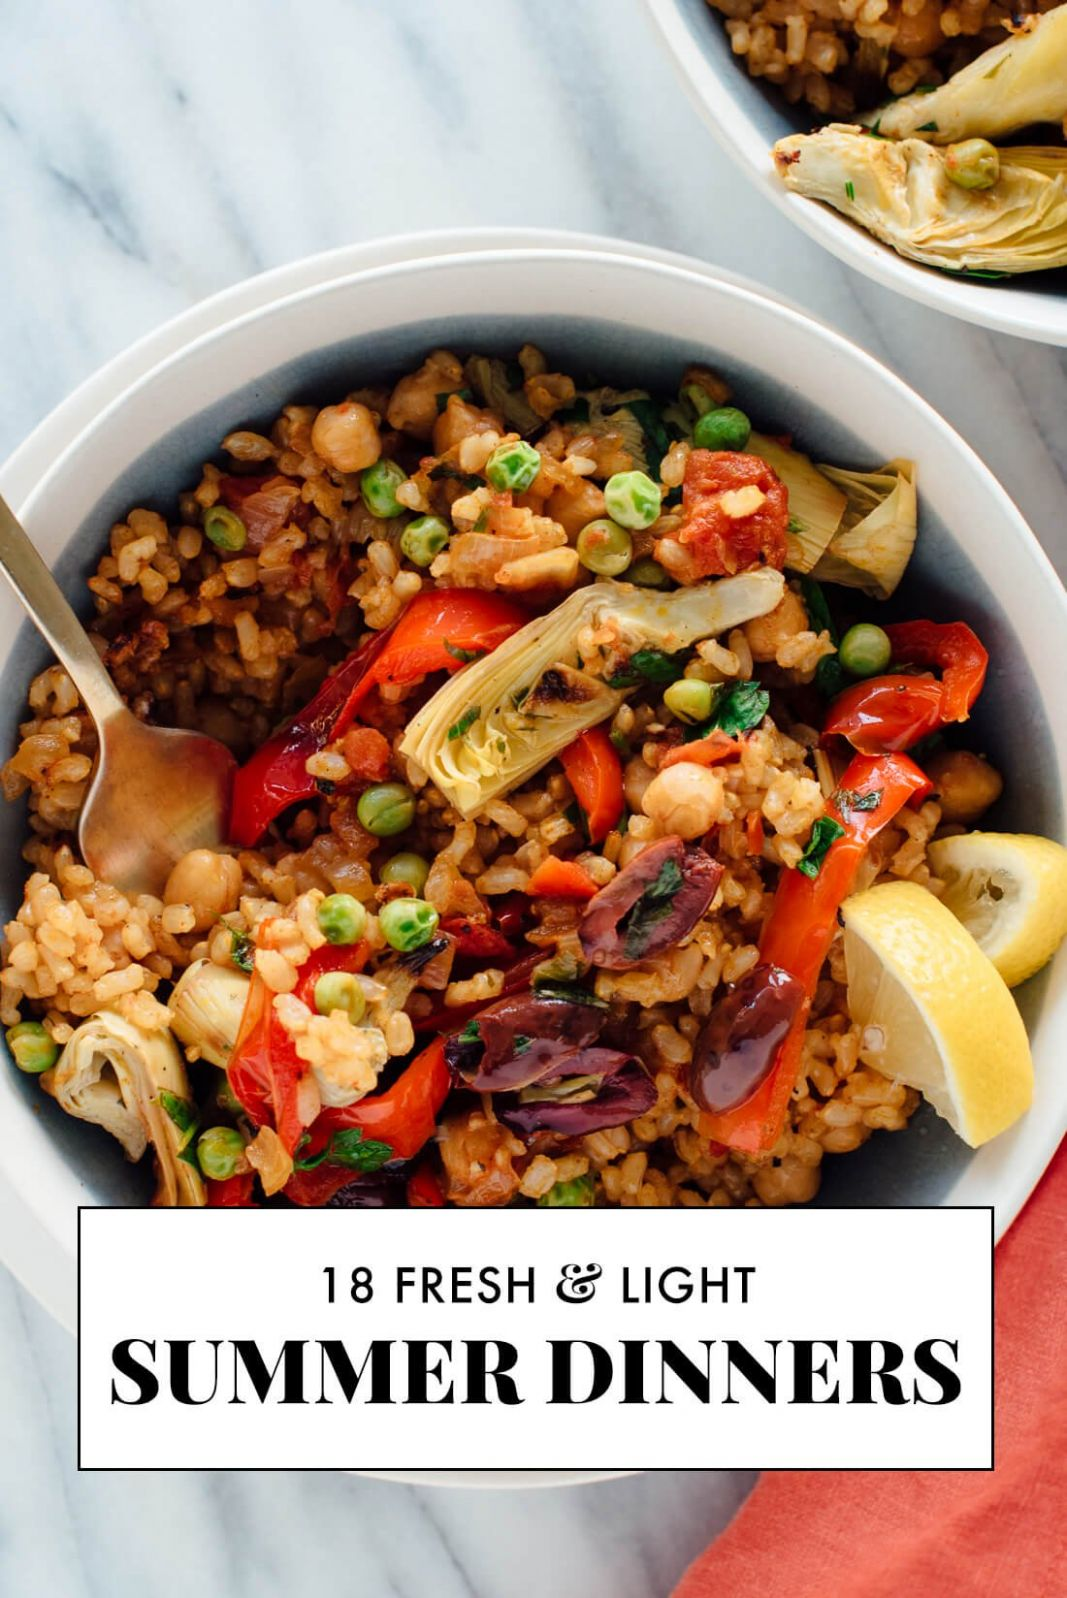 8 Light Summer Dinner Recipes - Cookie and Kate - Recipes Easy Summer Meals